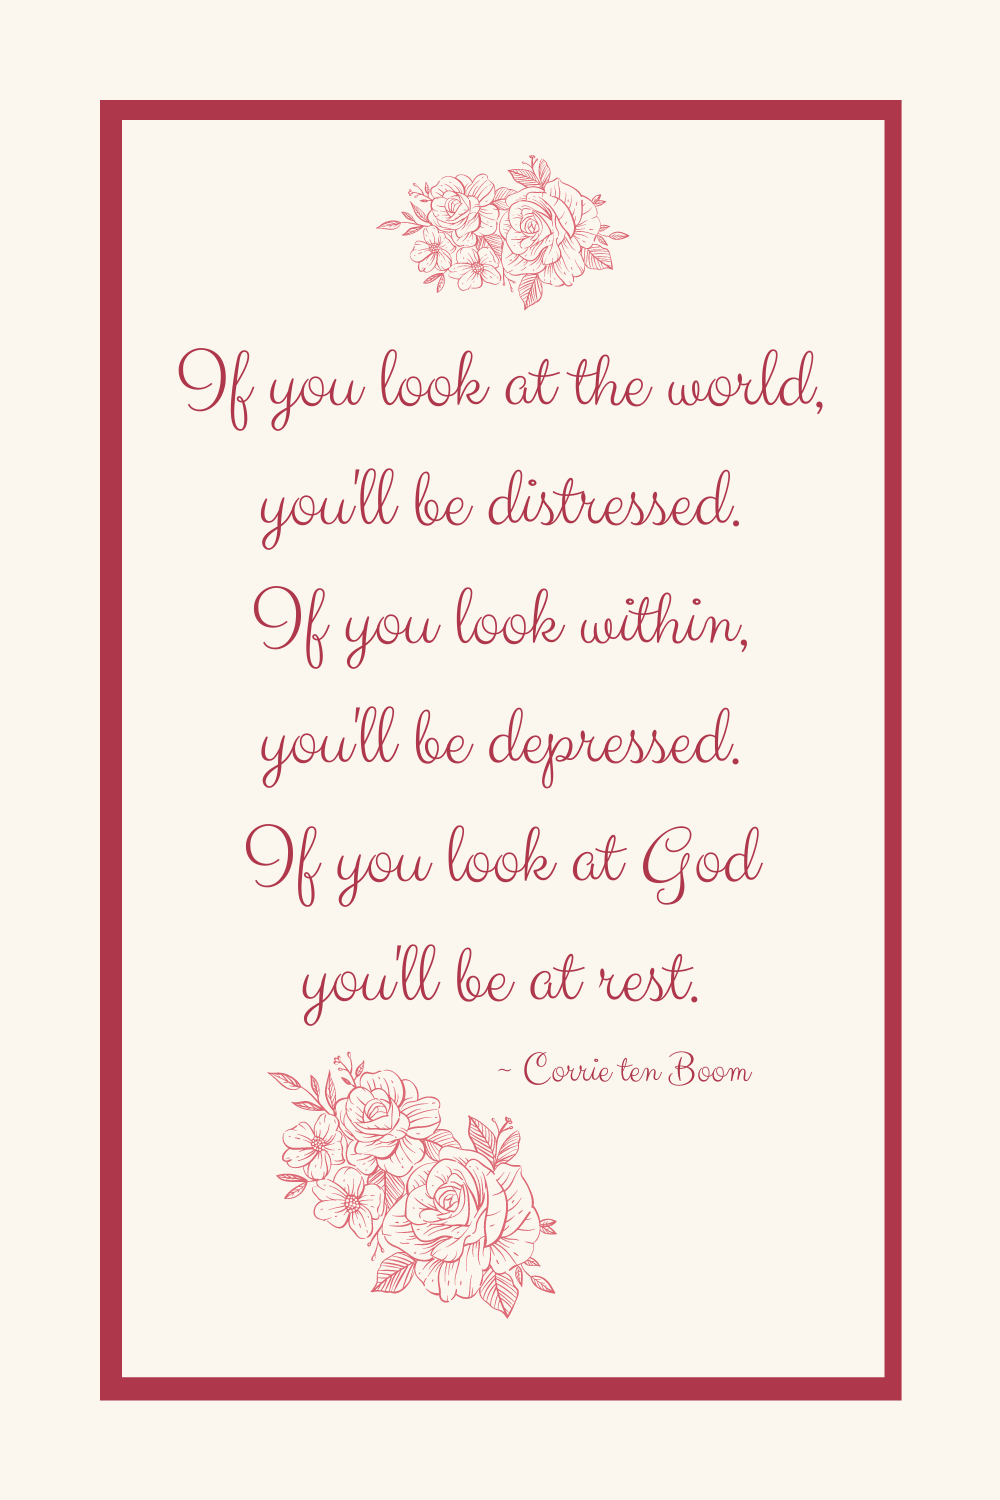 If you look at the world, you'll be distressed. If you look within, you'll be depressed. If you look at God you'll be at rest.